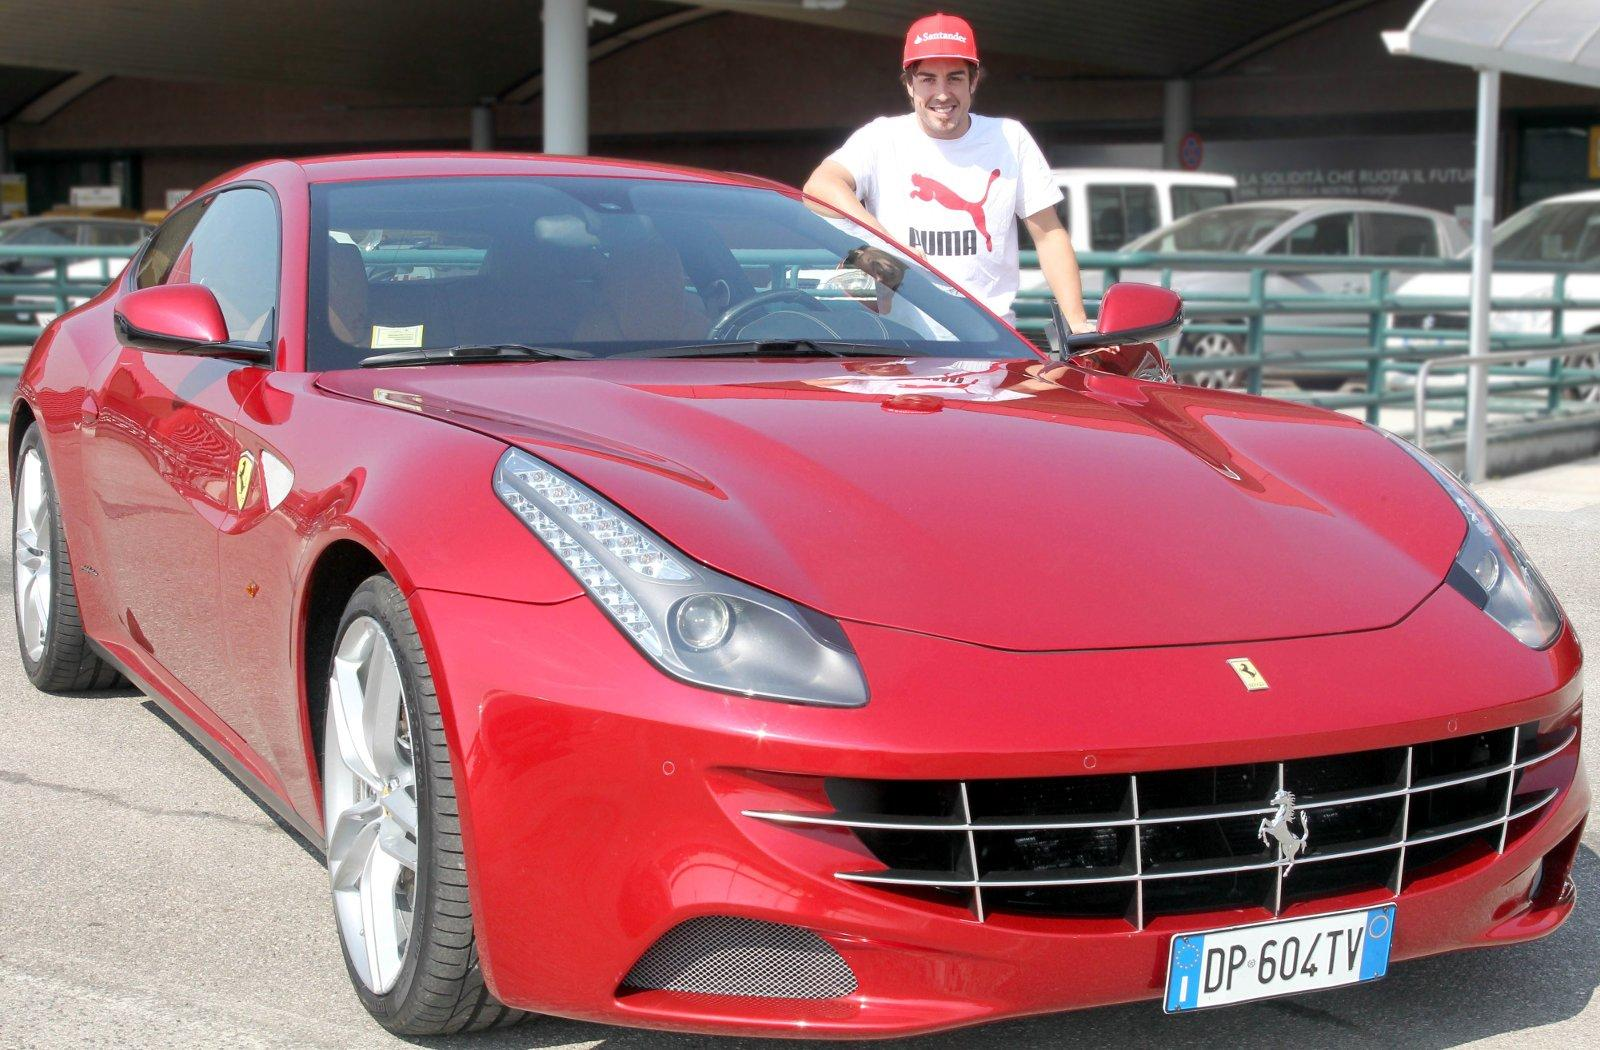 Ferrari FF gifted to Alonso